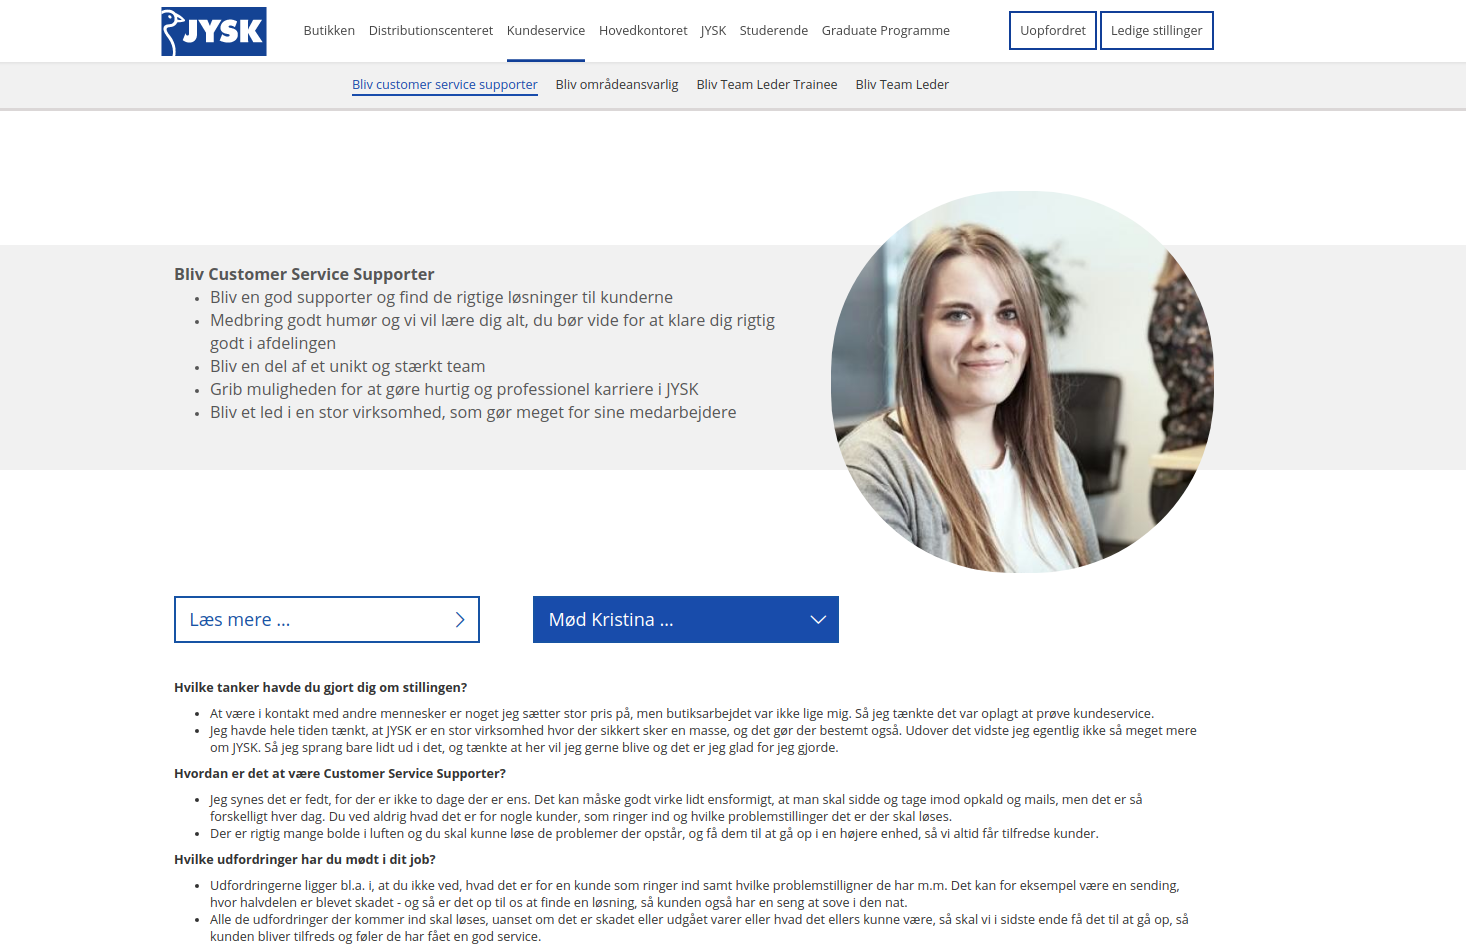 JYSK career website job description